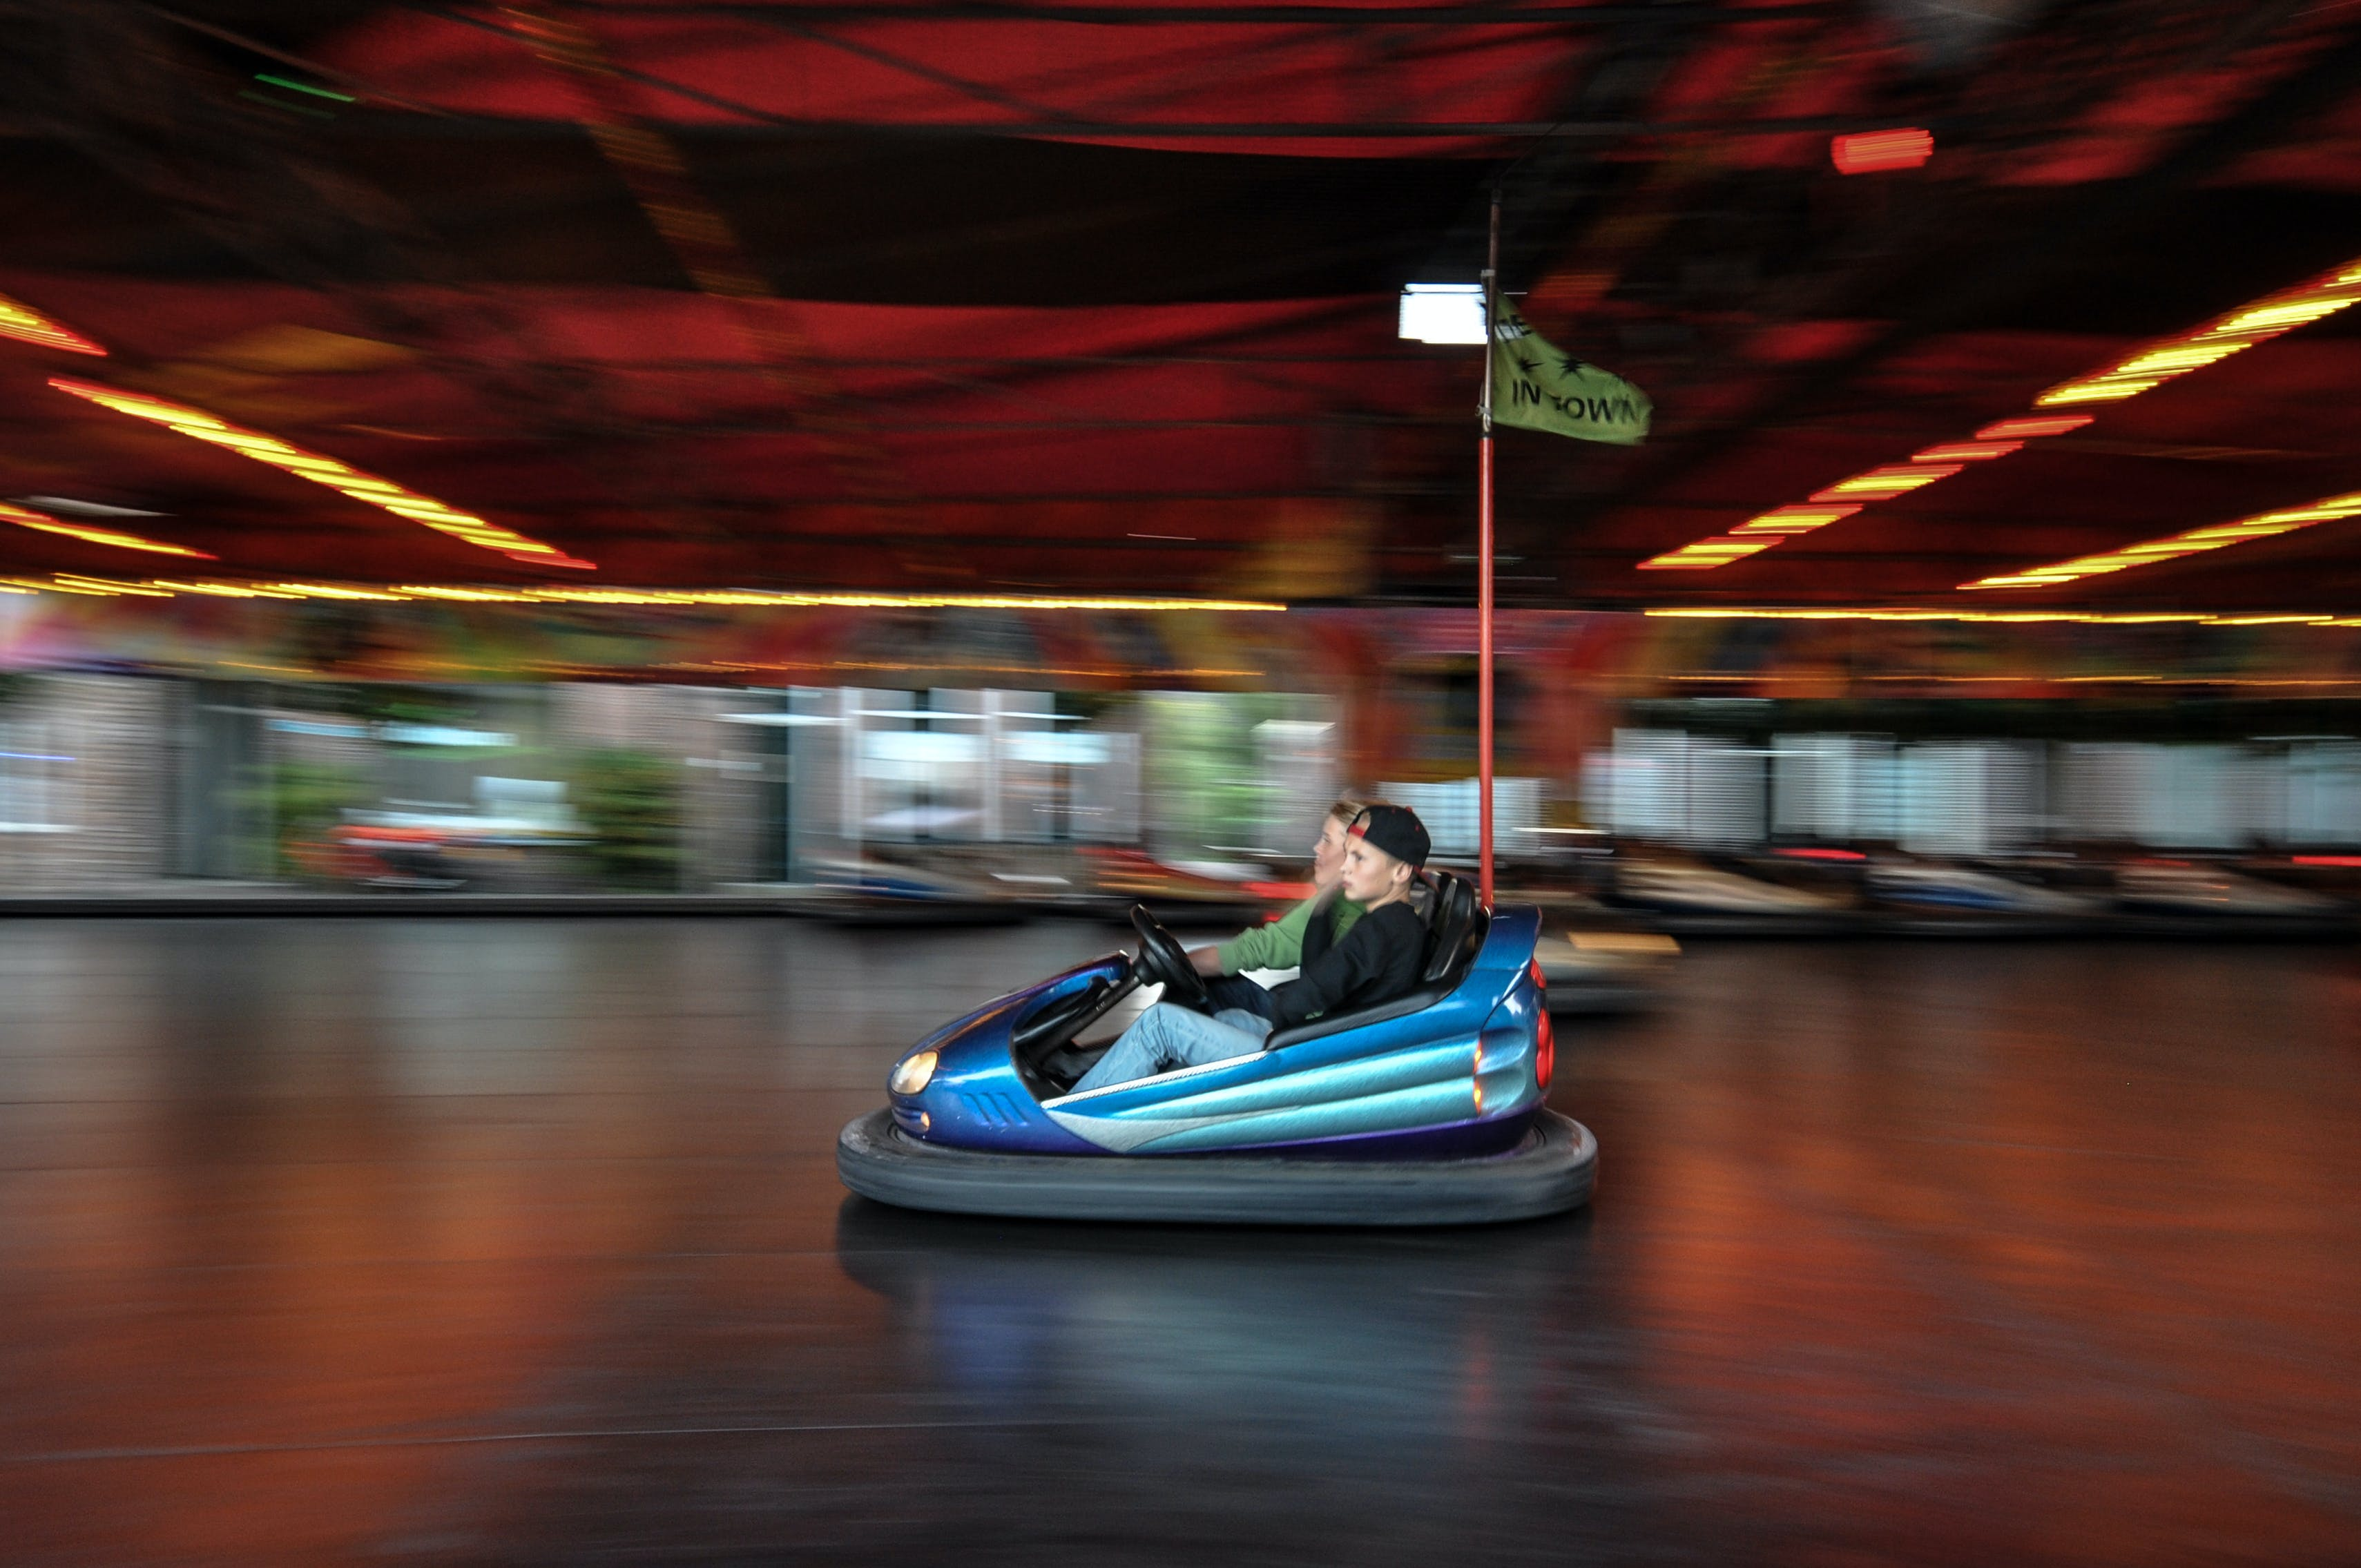 Free stock photo of funfair, fair, fun fair, bumper car